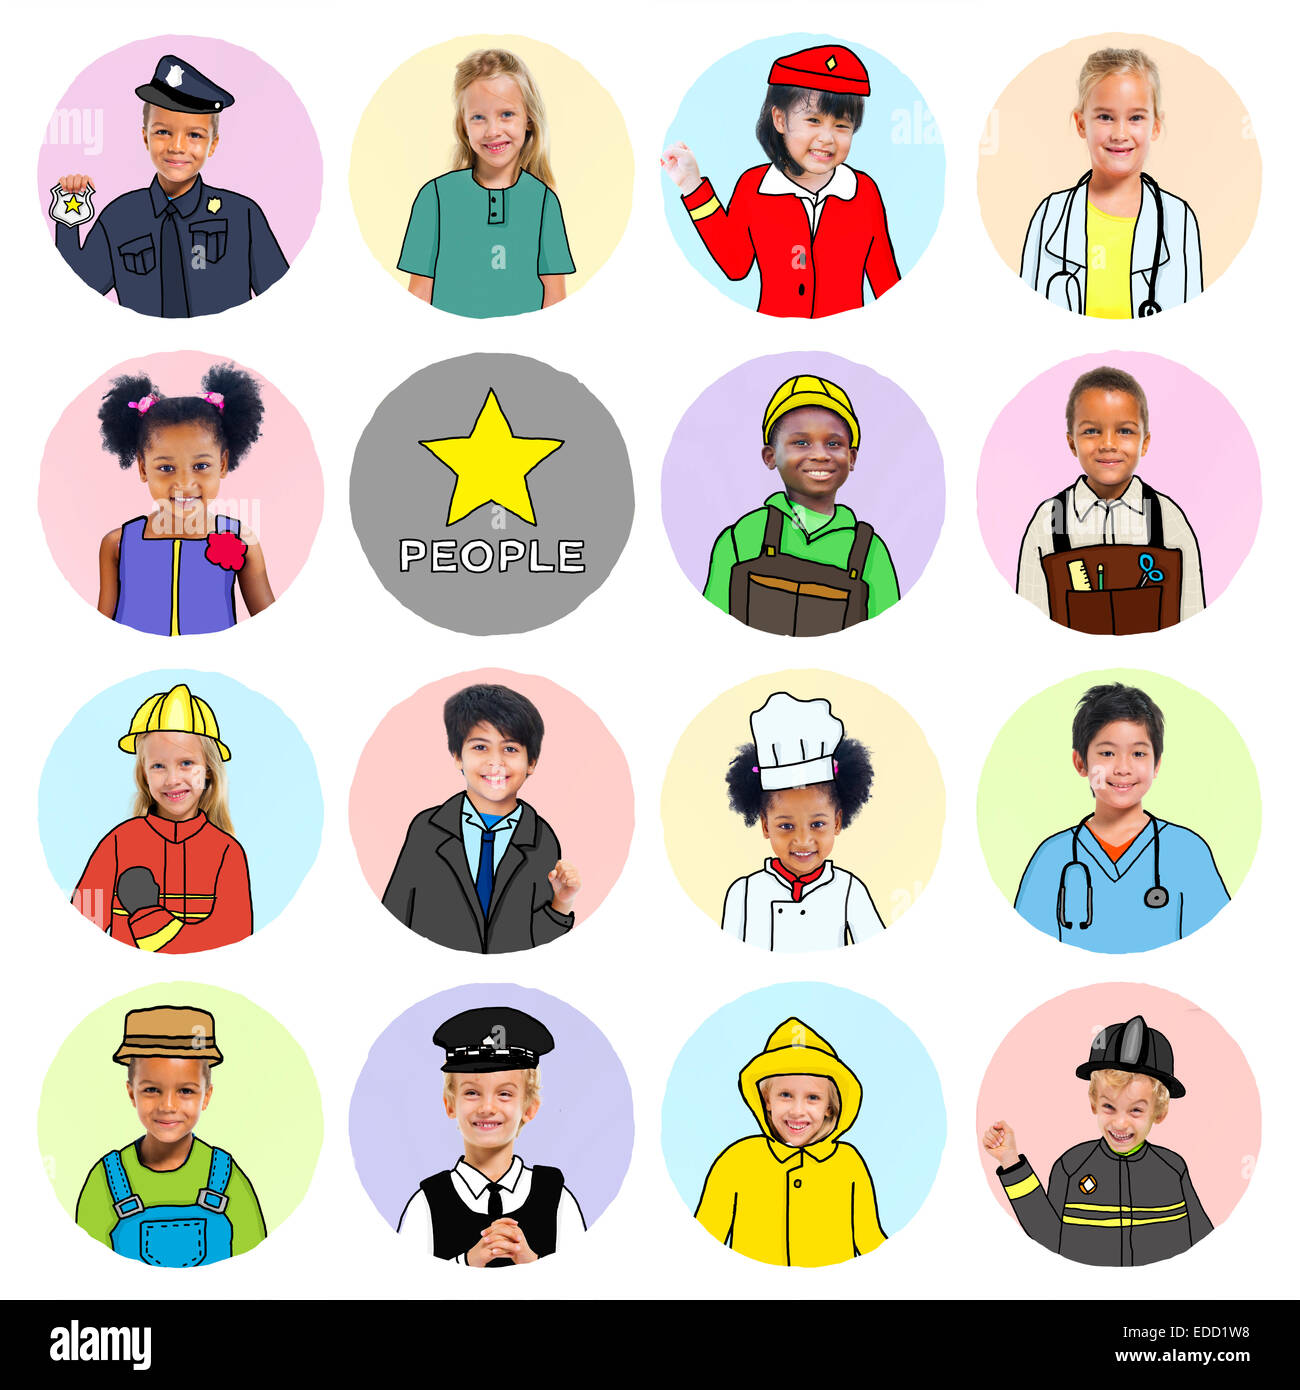 Multiethnic group of Children with Various Jobs Concepts - Stock Image